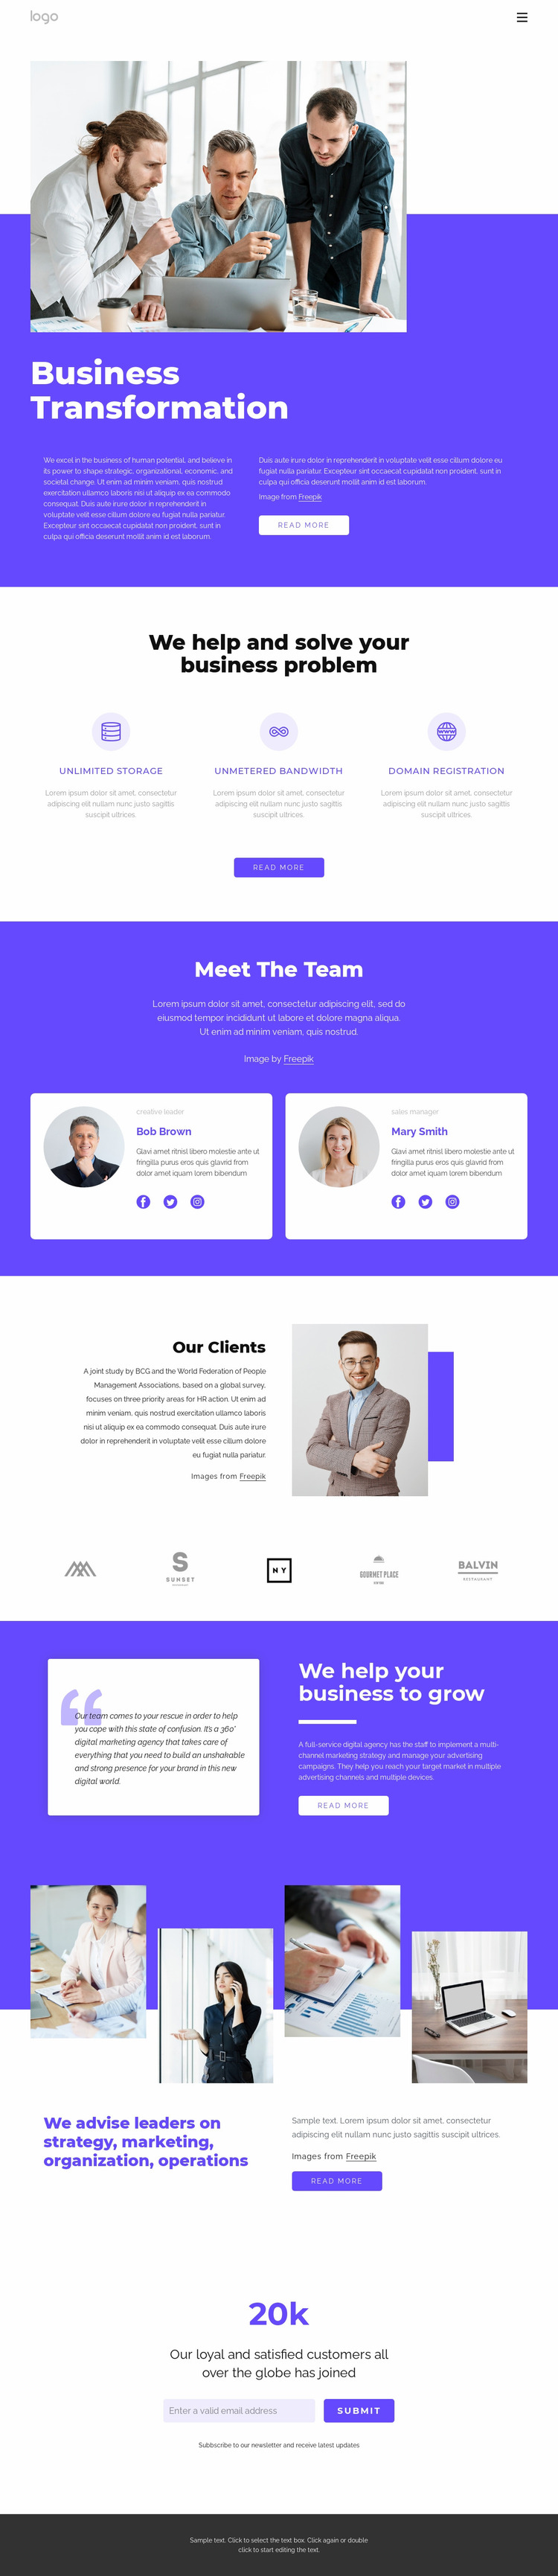 Global management consulting firm Website Mockup